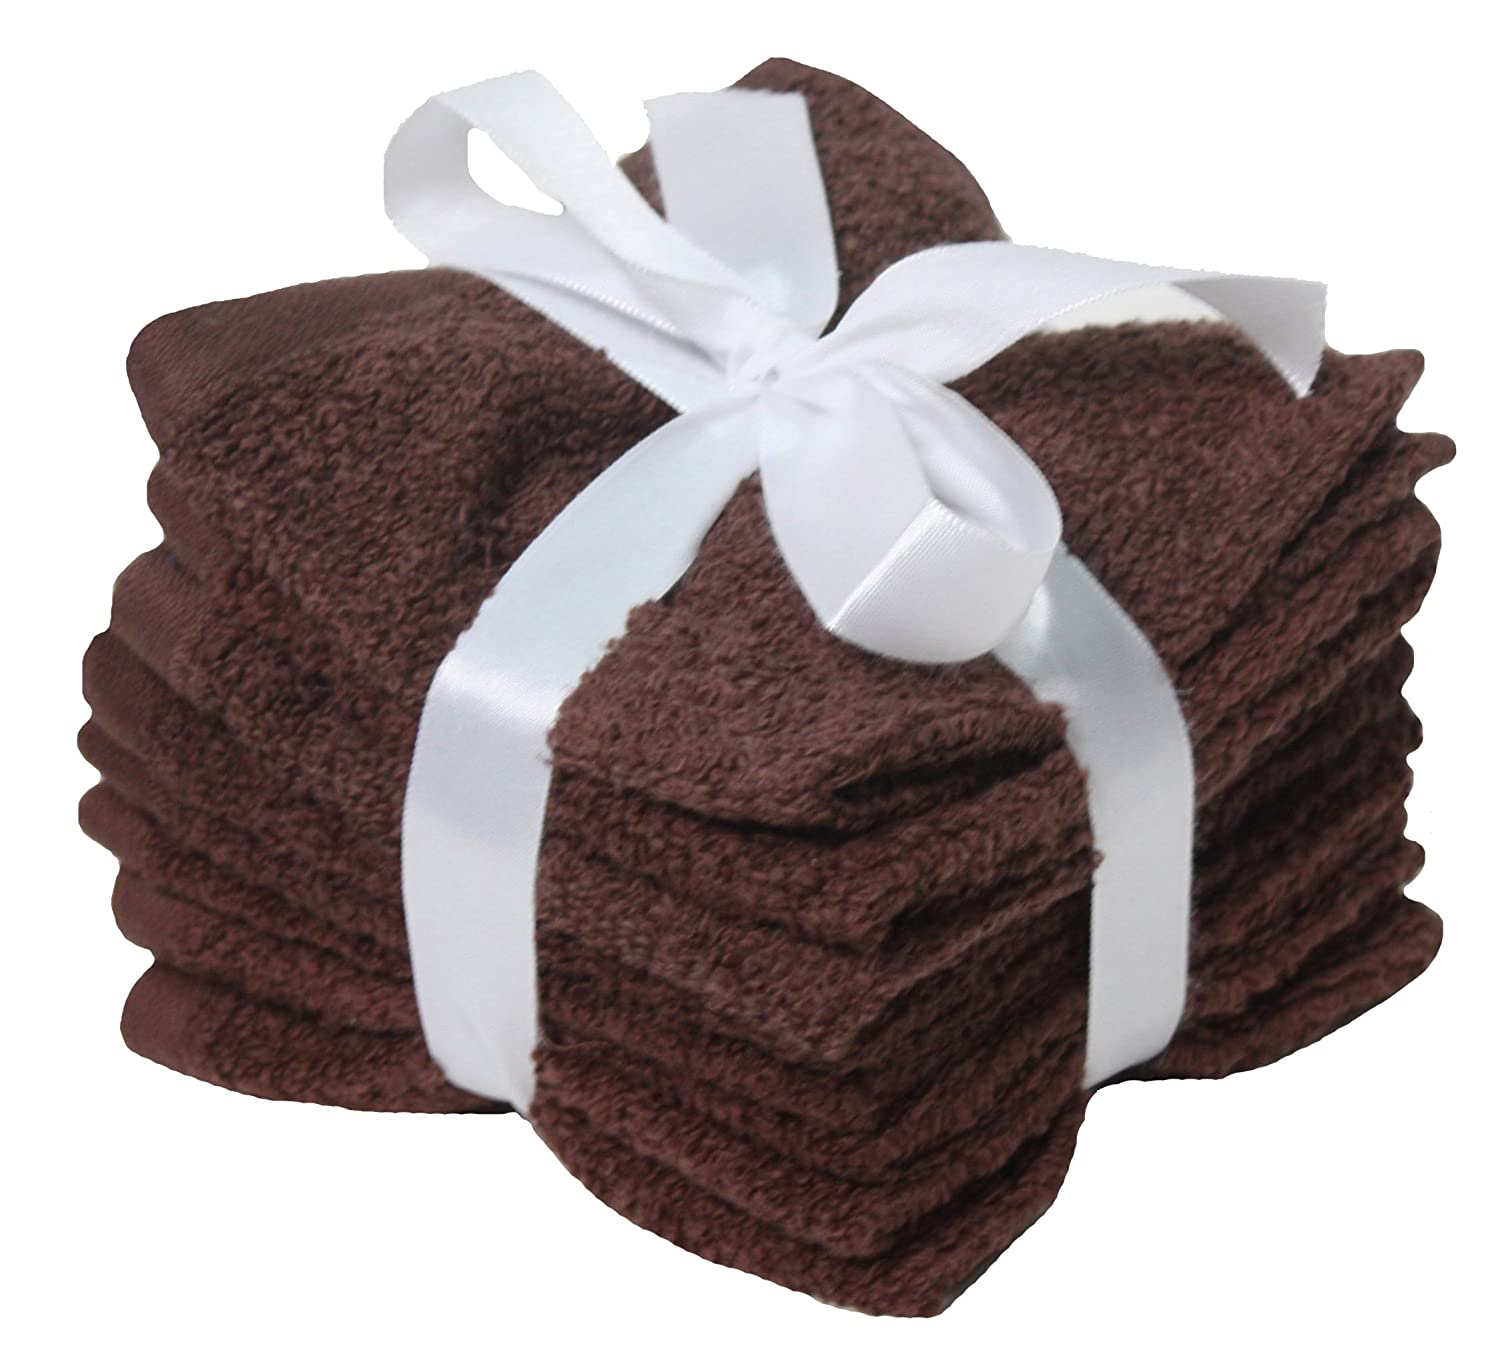 J&M Home Fashions Premium 8-Piece Cotton Washcloth Set, 12x12, Hotel & Spa Quality, Super Soft and Ultra Absorbent Face Towels for Bathroom & Washroom-Coffee Brown J & M Home Fashions 70158A